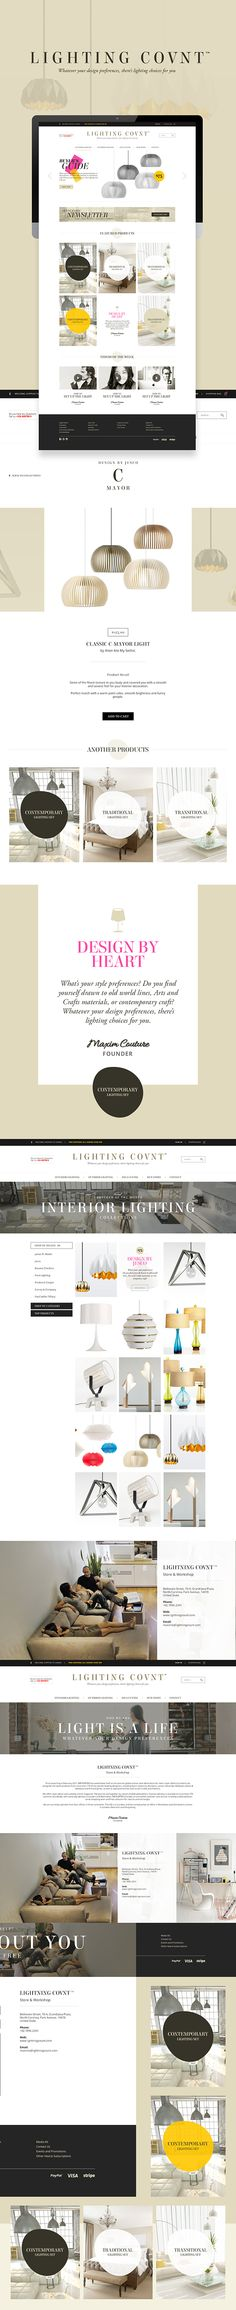 Lighting Count™  is a store and lightning workshop.